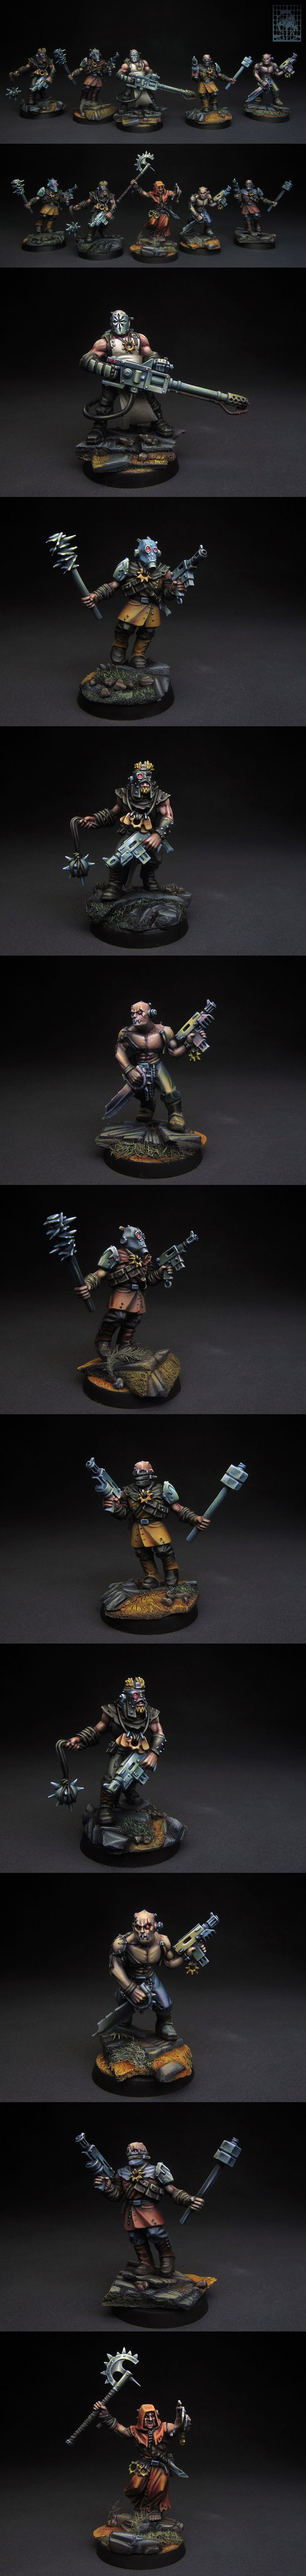 CHAOS CULTISTS OF SECT ANARKUS I have whole Dark Vengeance box to paint and this is first part.  I accept commissions, PM me or email to we7@73.ru You can also find me on facebook https://www.facebook.com/chasnyk.sergey  Best, Sergey